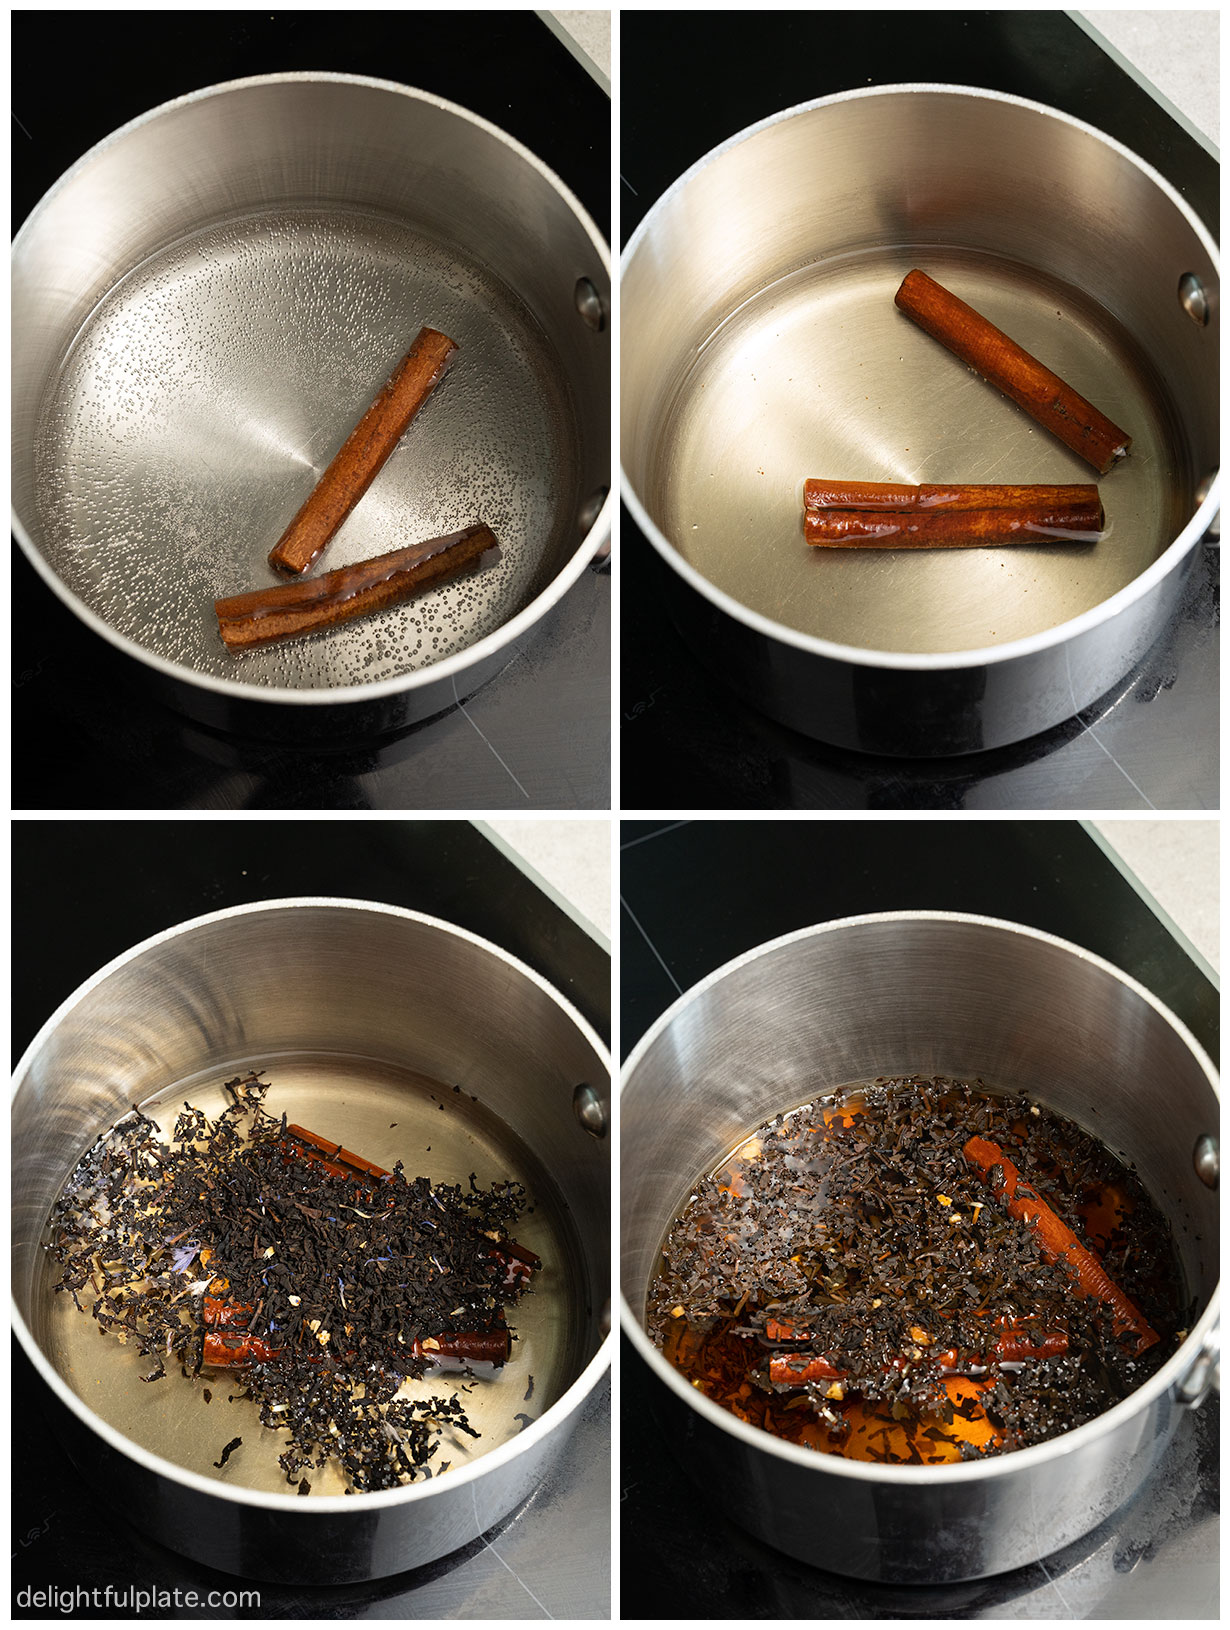 photos of steps to simmer cinnamon sticks and brew tea